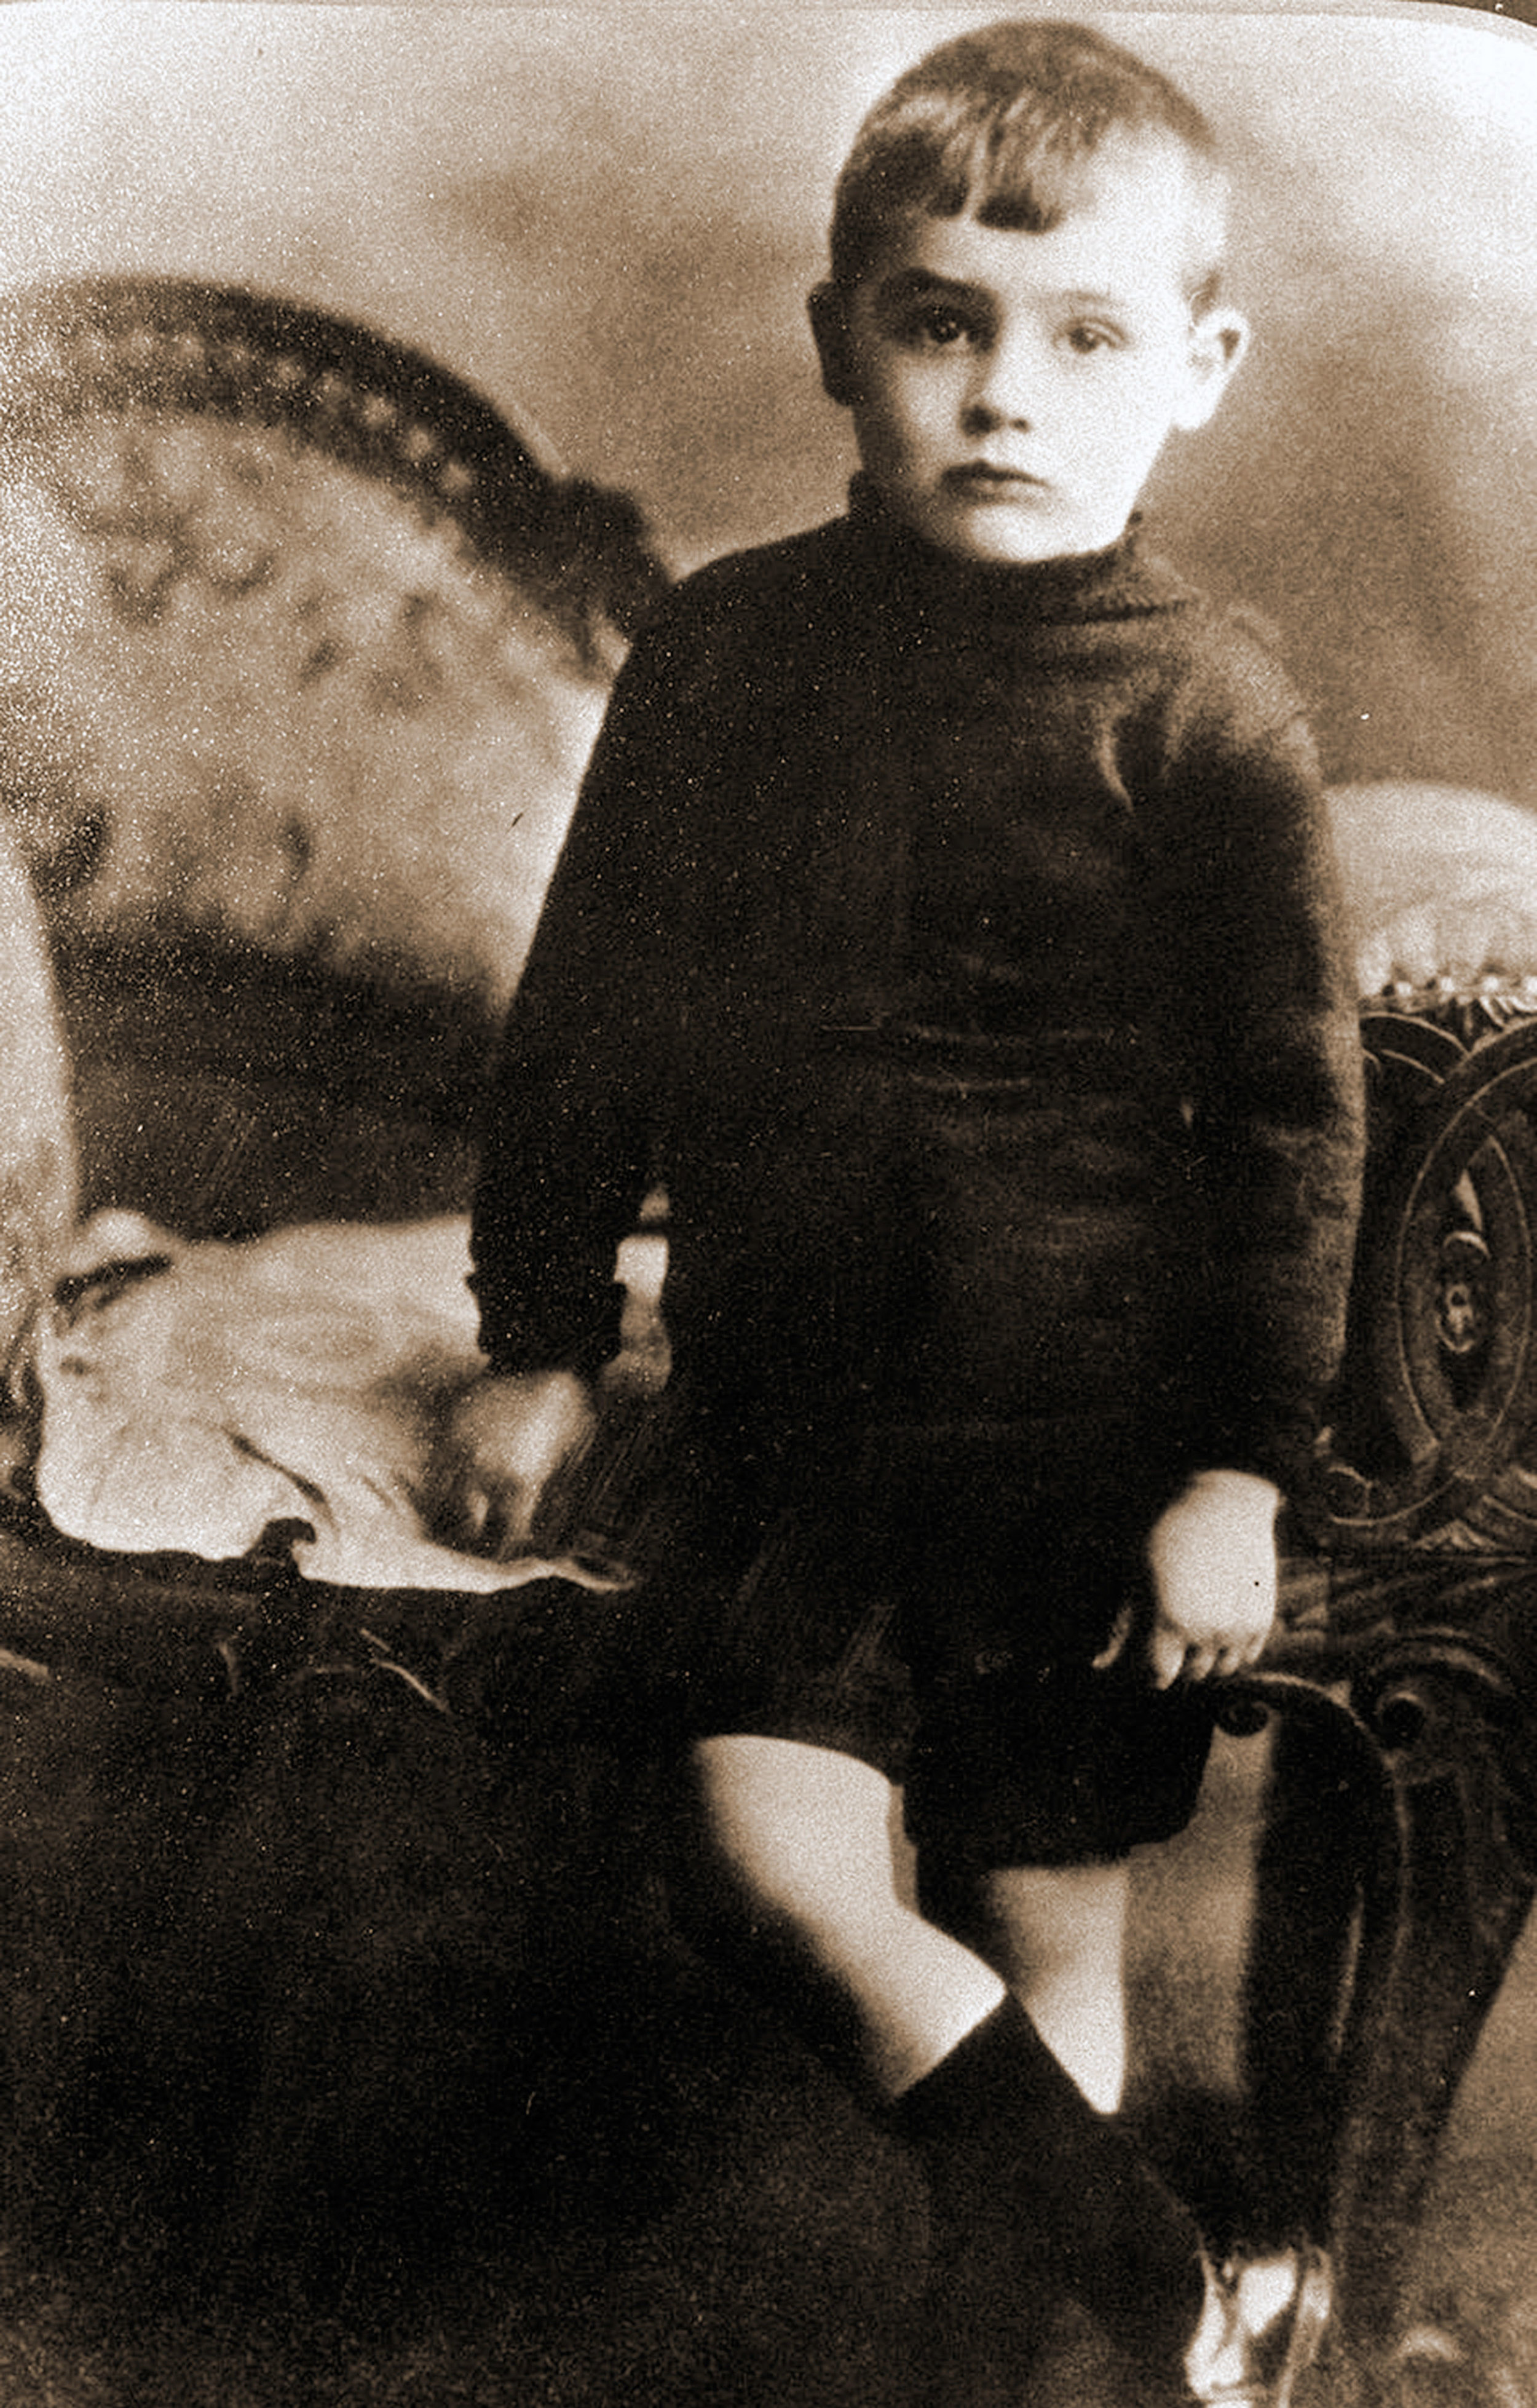 Archie/Cary as a young boy